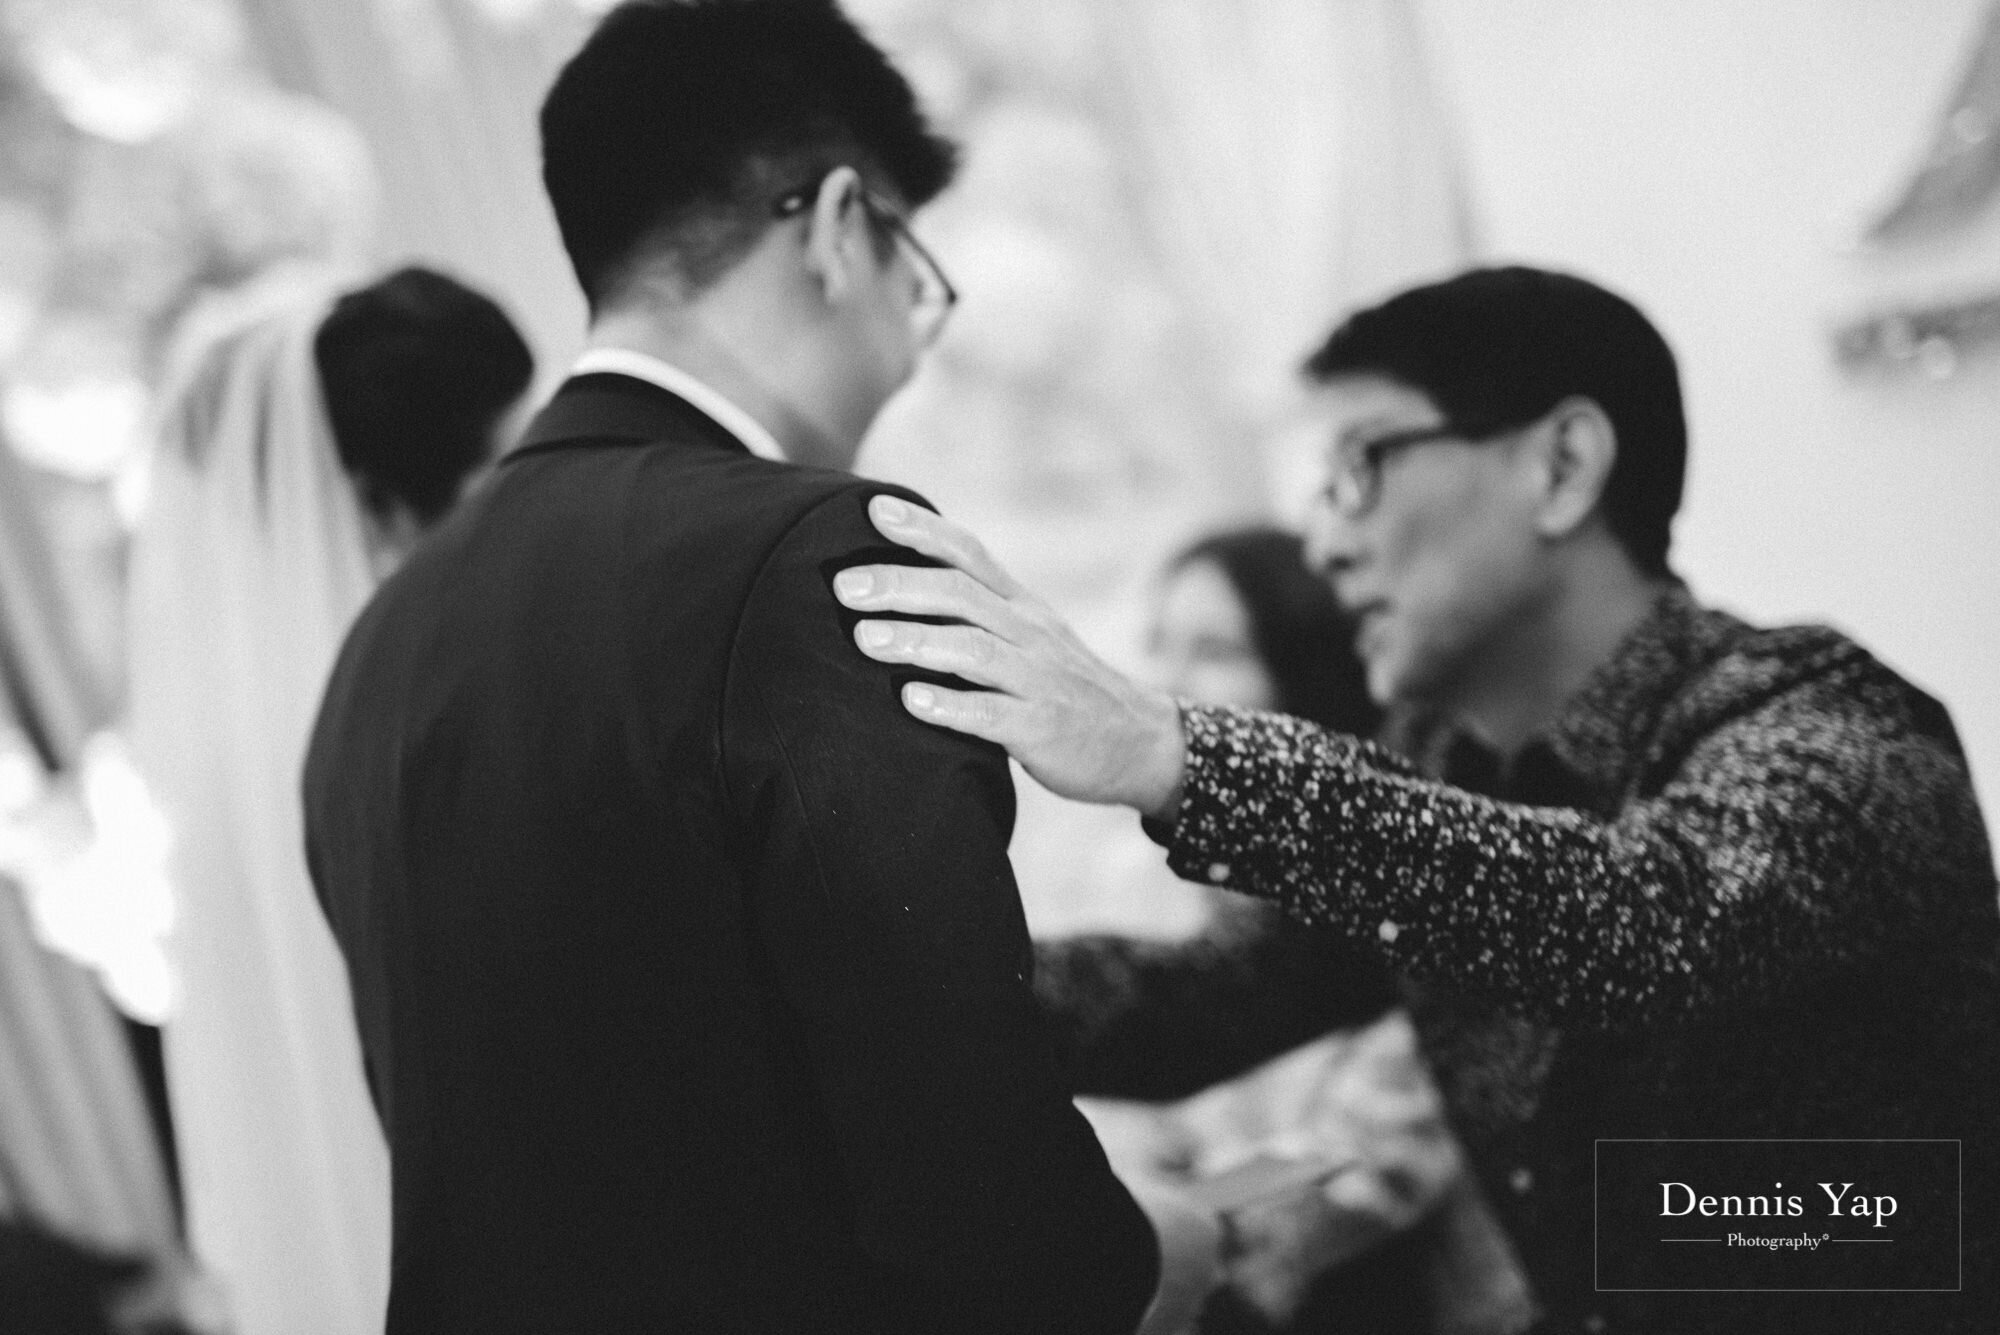 kevan khing wei wedding day hilton kuala lumpur vow exchange ceremony dennis yap photography malaysia top wedding photographer-28.jpg